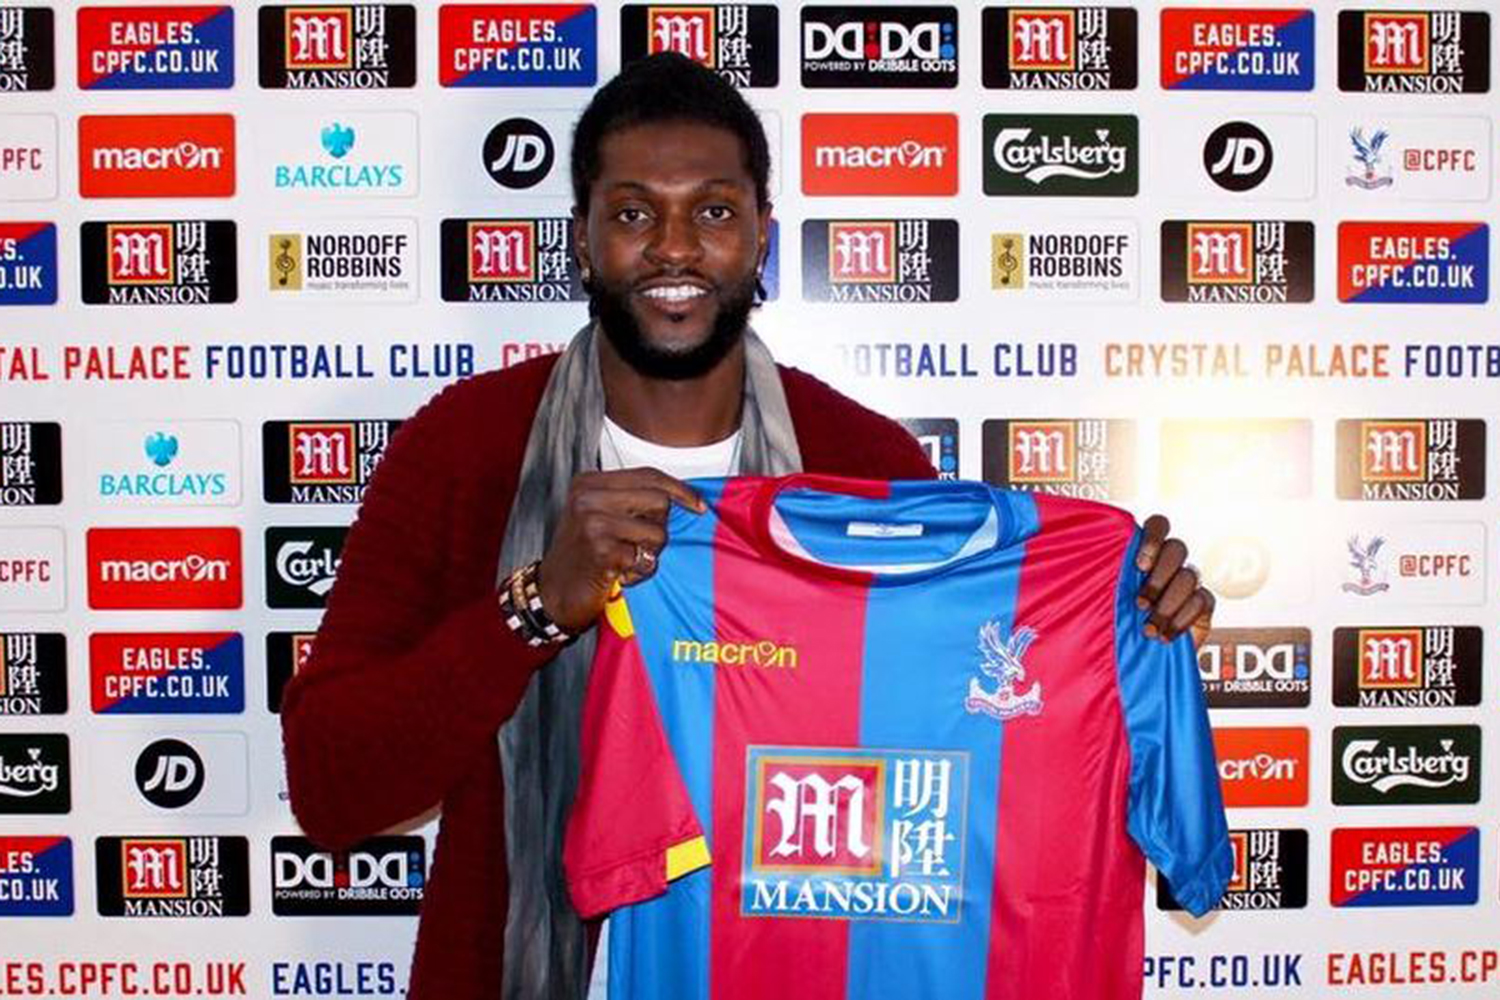 SUNSPORT_ADEBAYORj_2660068a